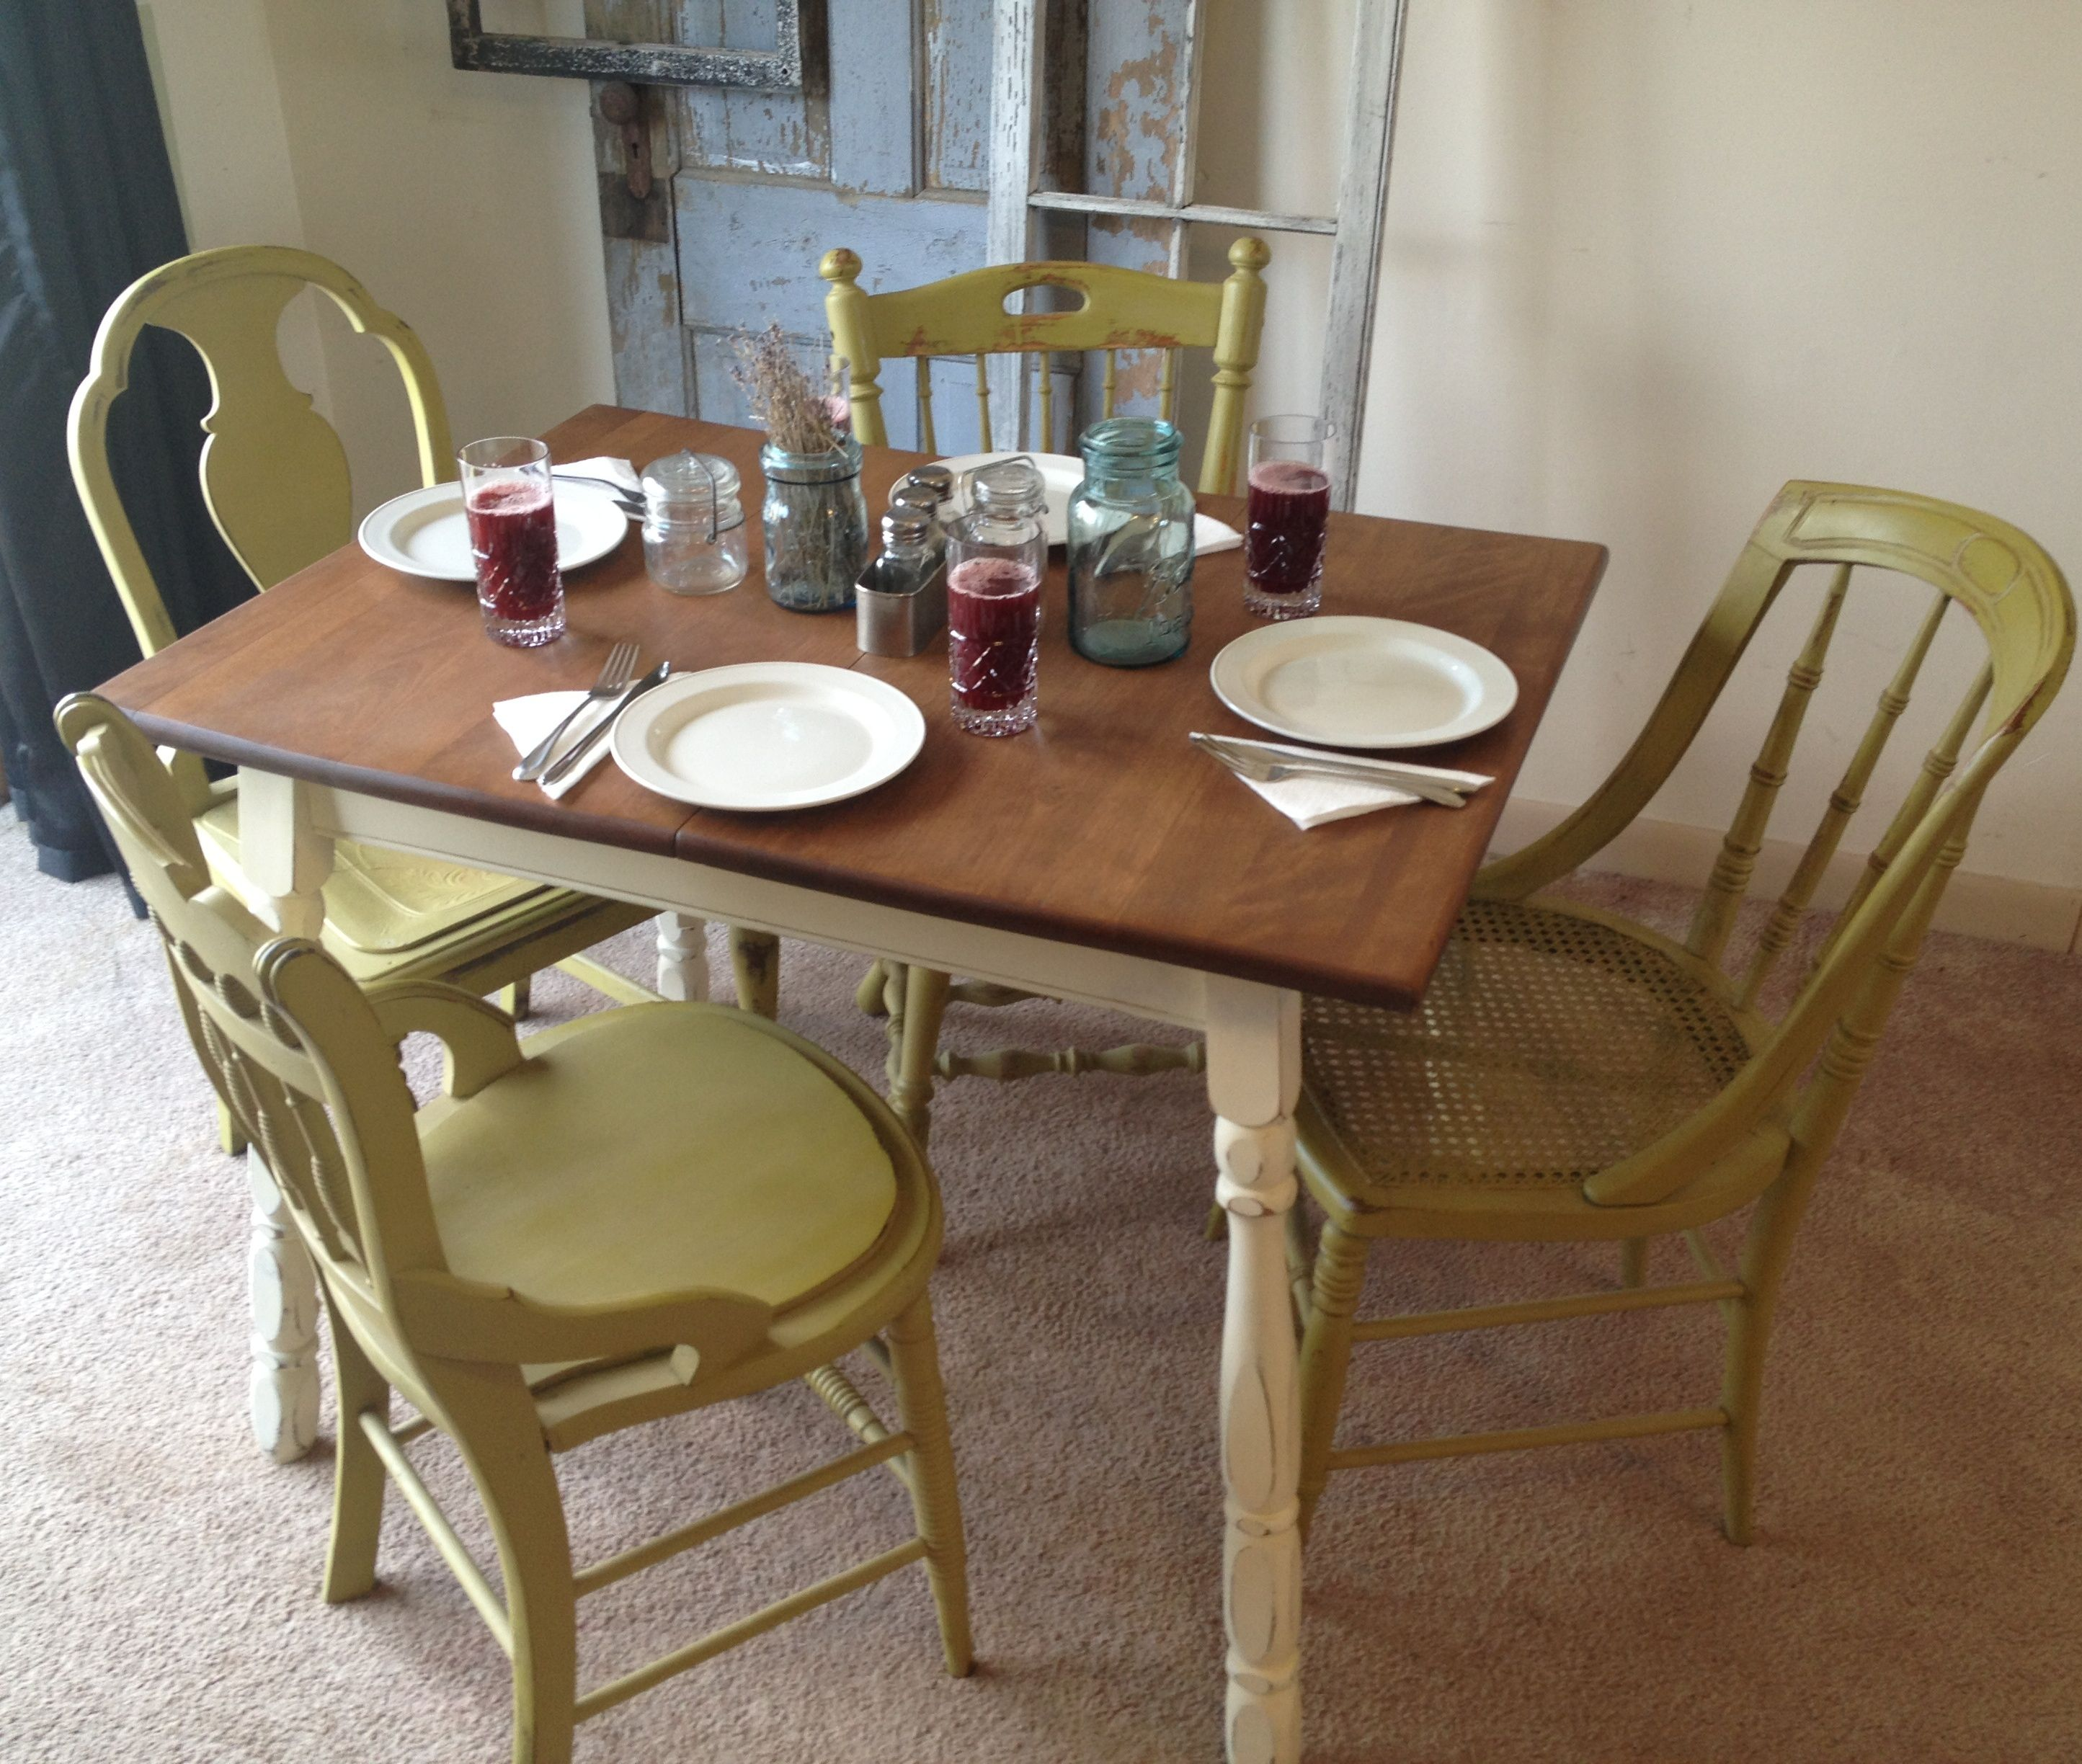 Small Country Table And Chairs: Picture Of 1940s Vintage Kitchen Table And Chairs